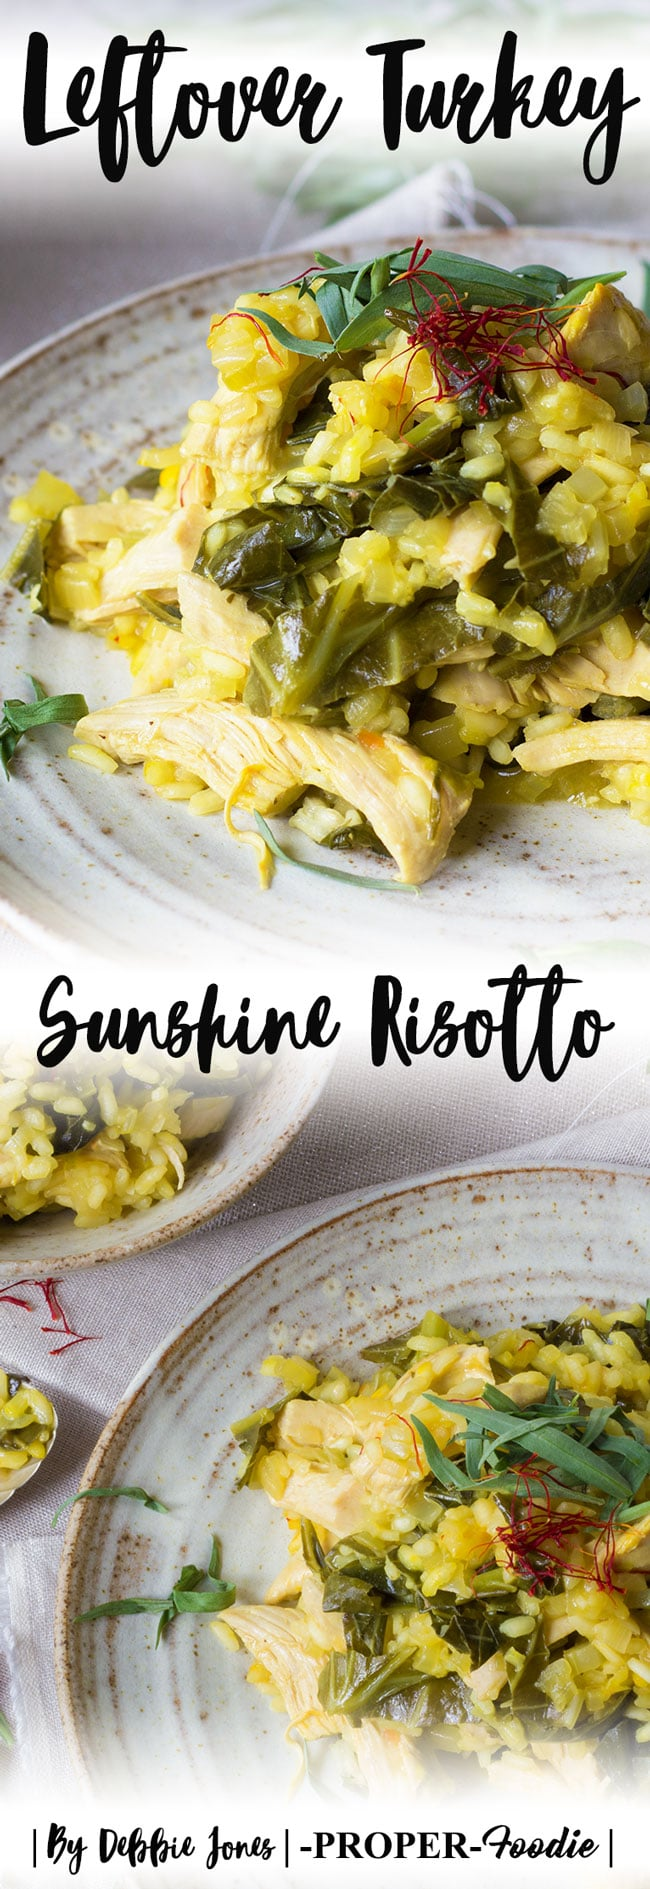 Leftover Turkey Sunshine Risotto